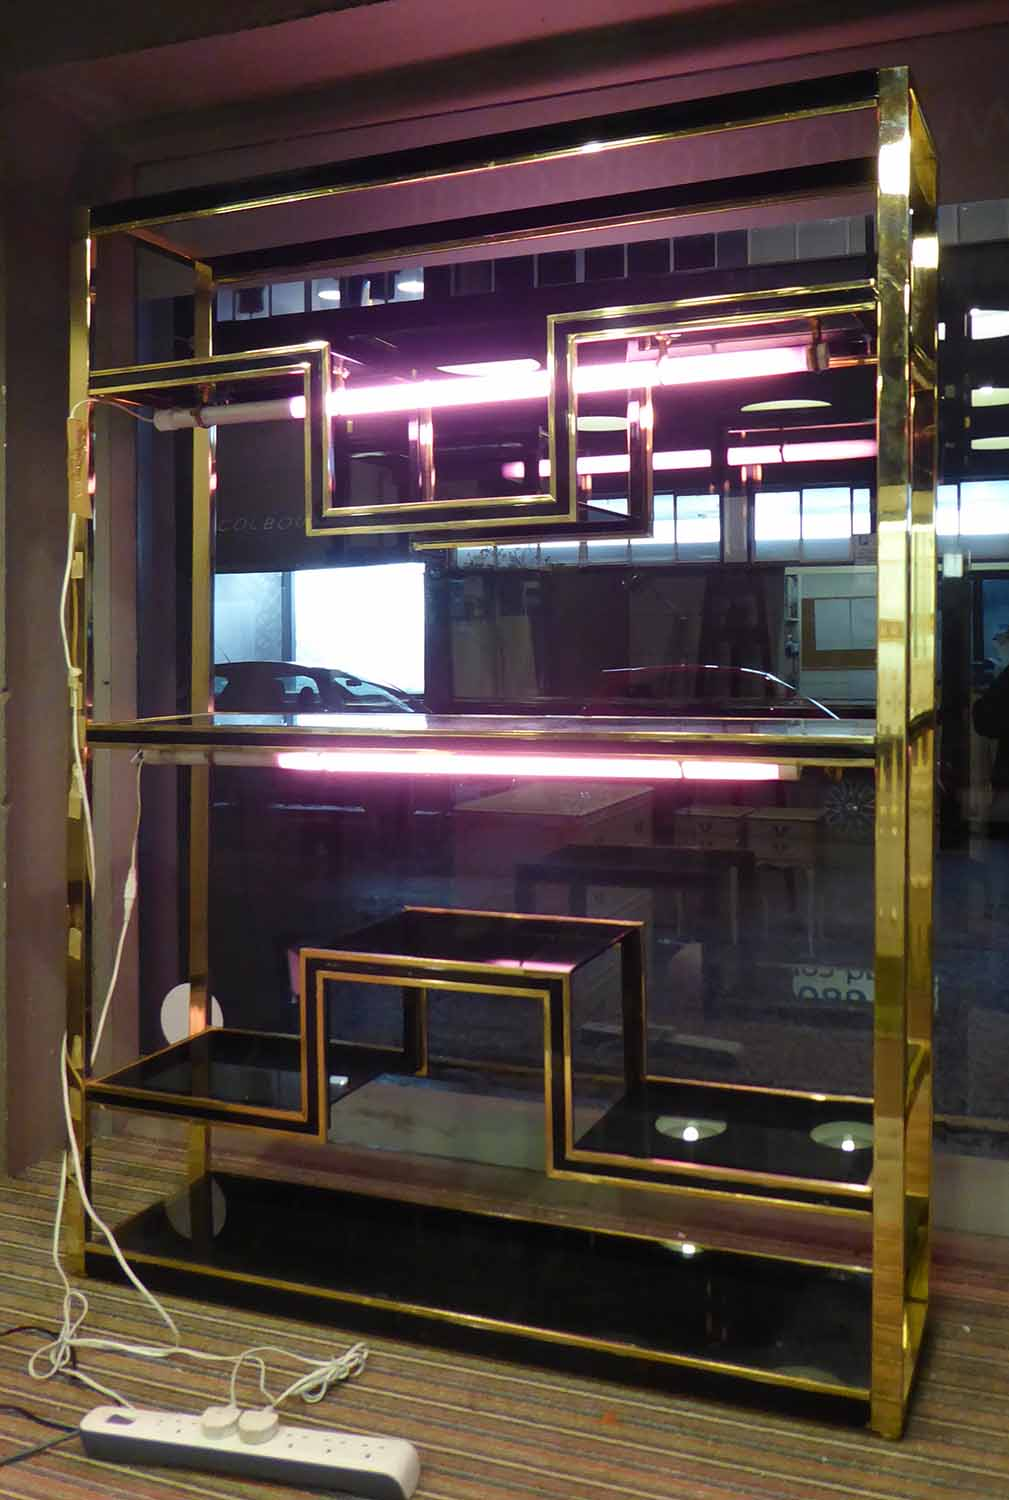 Lot 30 - COCKTAIL BAR, vintage 1960's French with later added pink neon lights, 139cm x 37cm x 182cm.